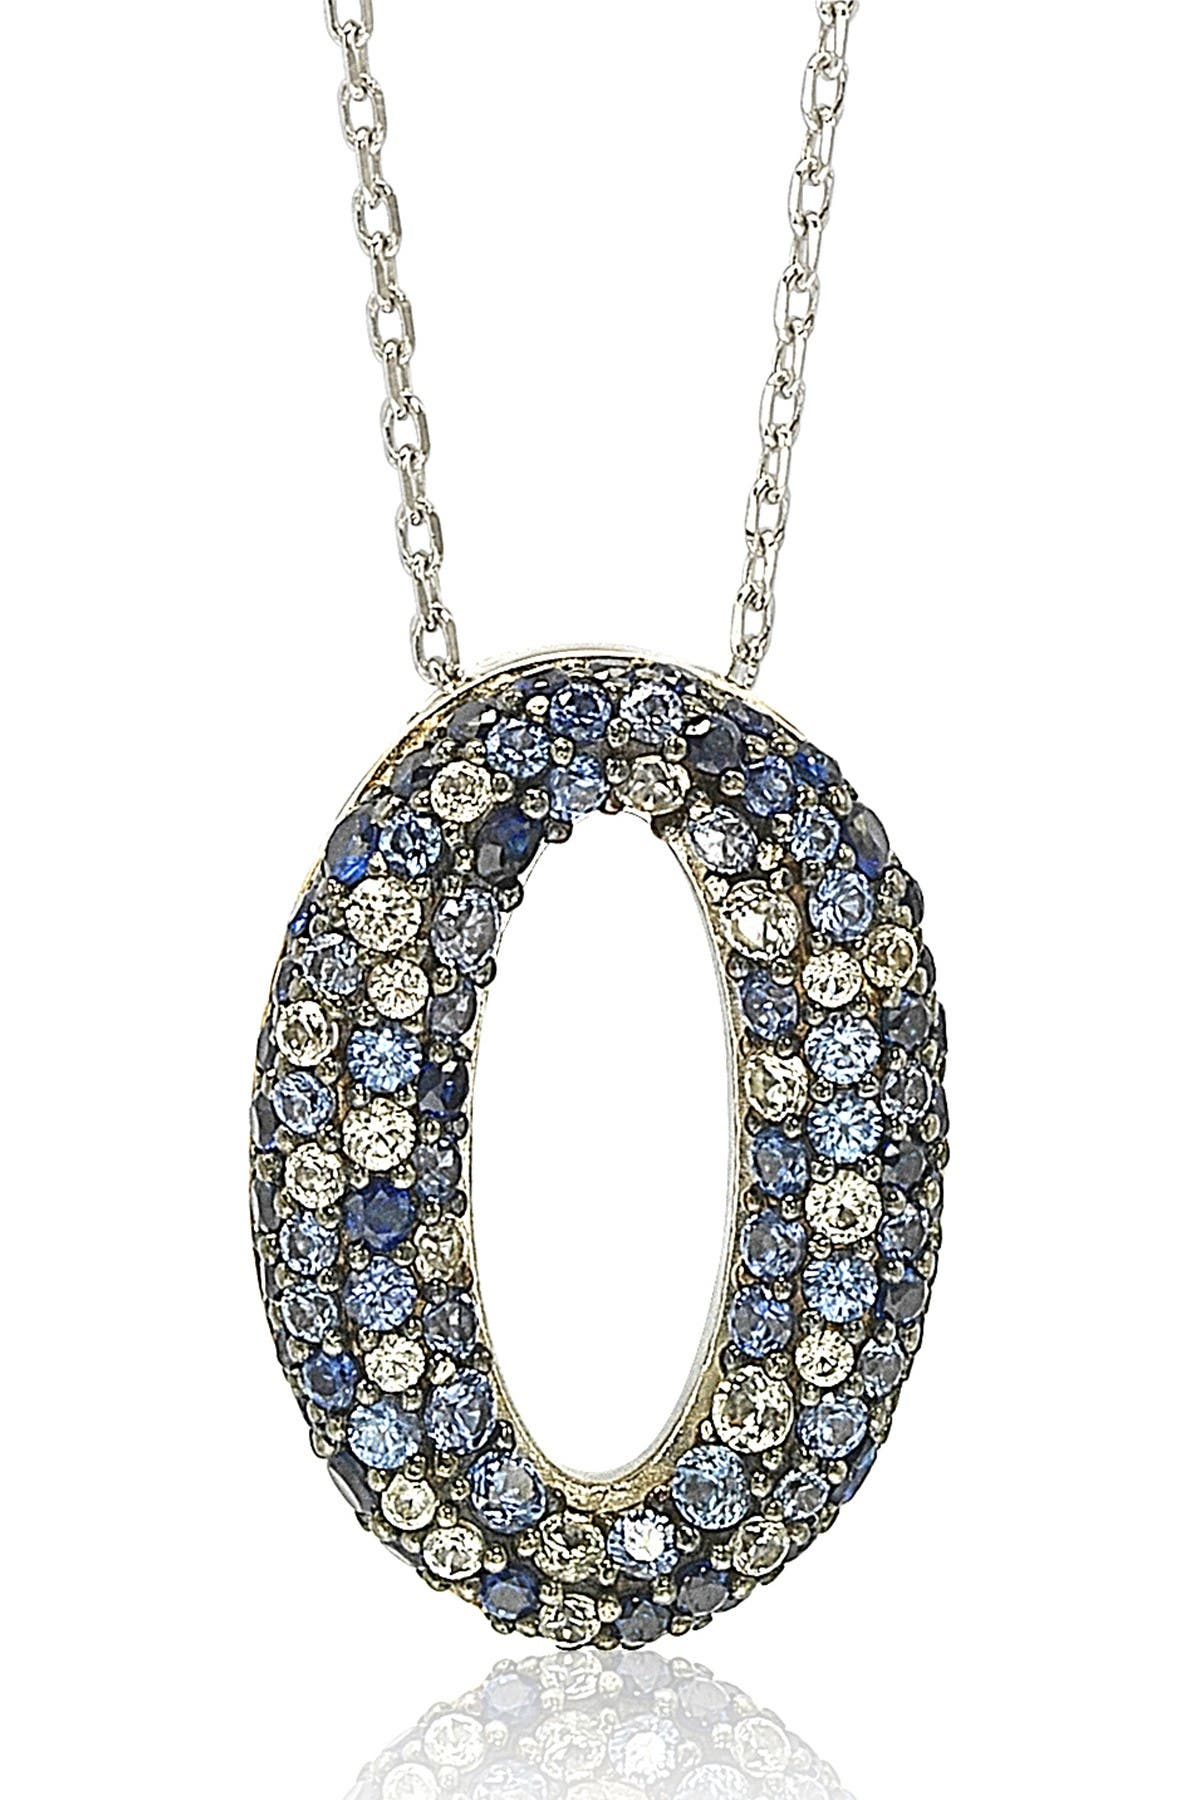 Image of Suzy Levian Sterling Silver Sapphire Diamond Accent Oval Pendant Necklace - 0.02 ctw